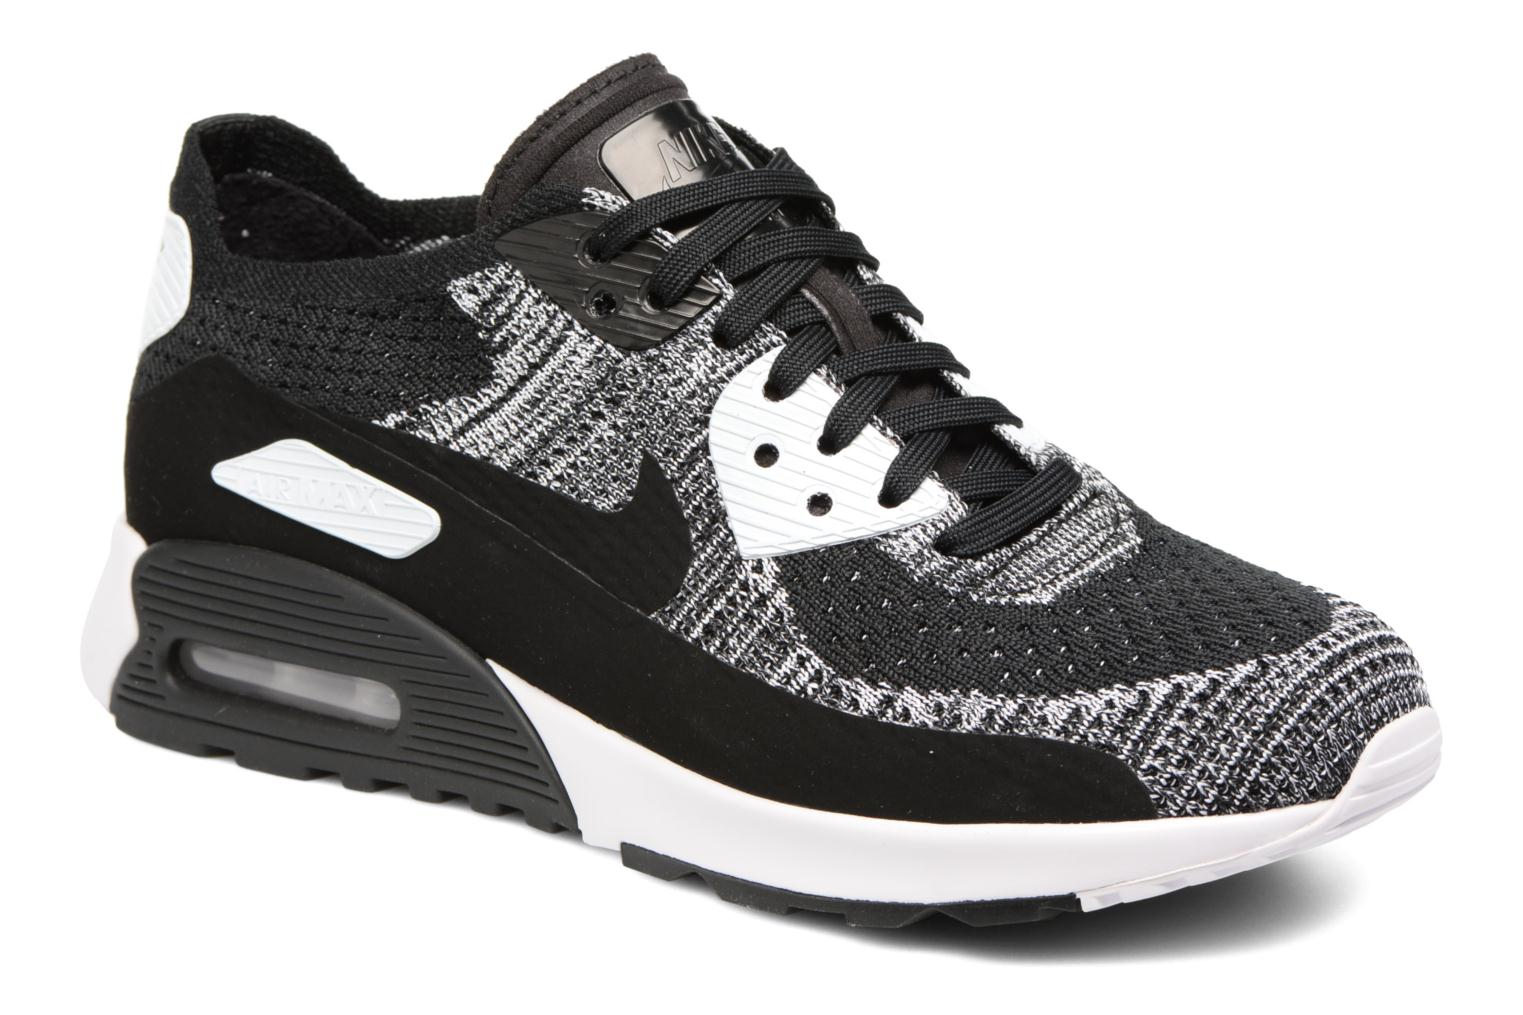 W Air Max 90 Ultra 2.0 Flyknit BLACK/BLACK-WHITE-ANTHRACITE